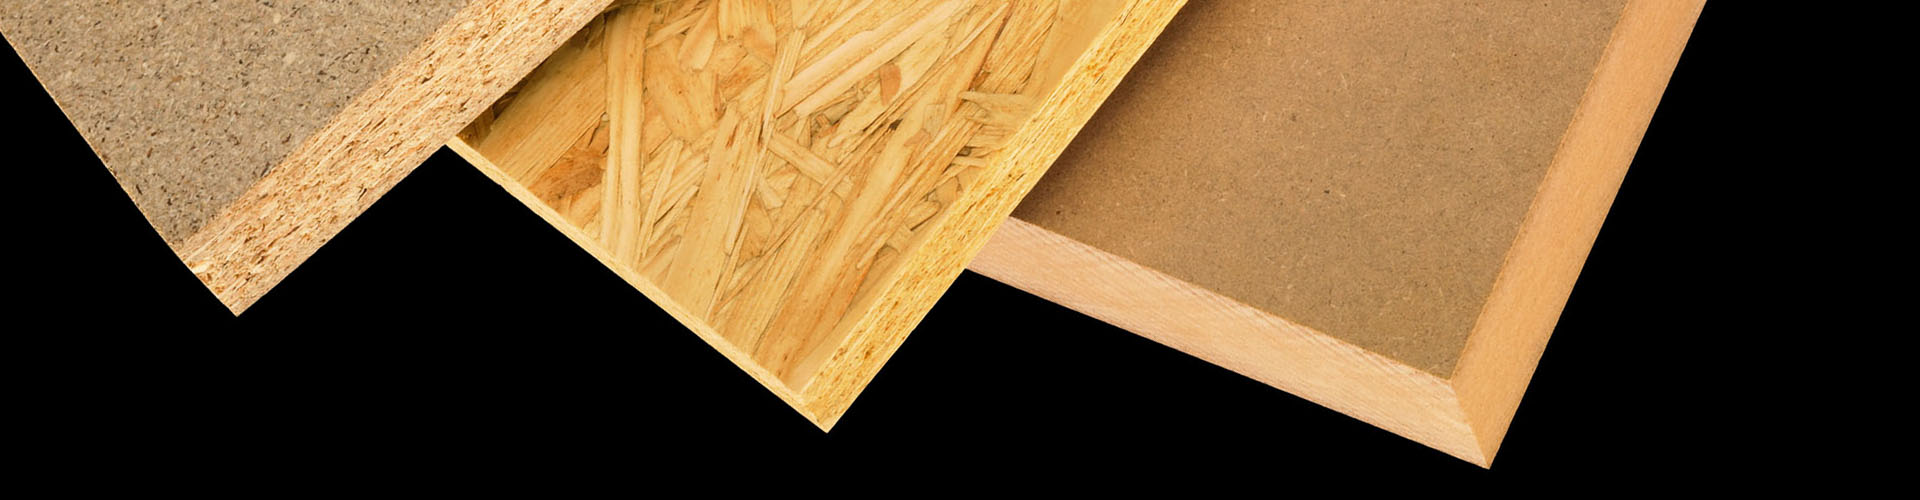 panel saw materials